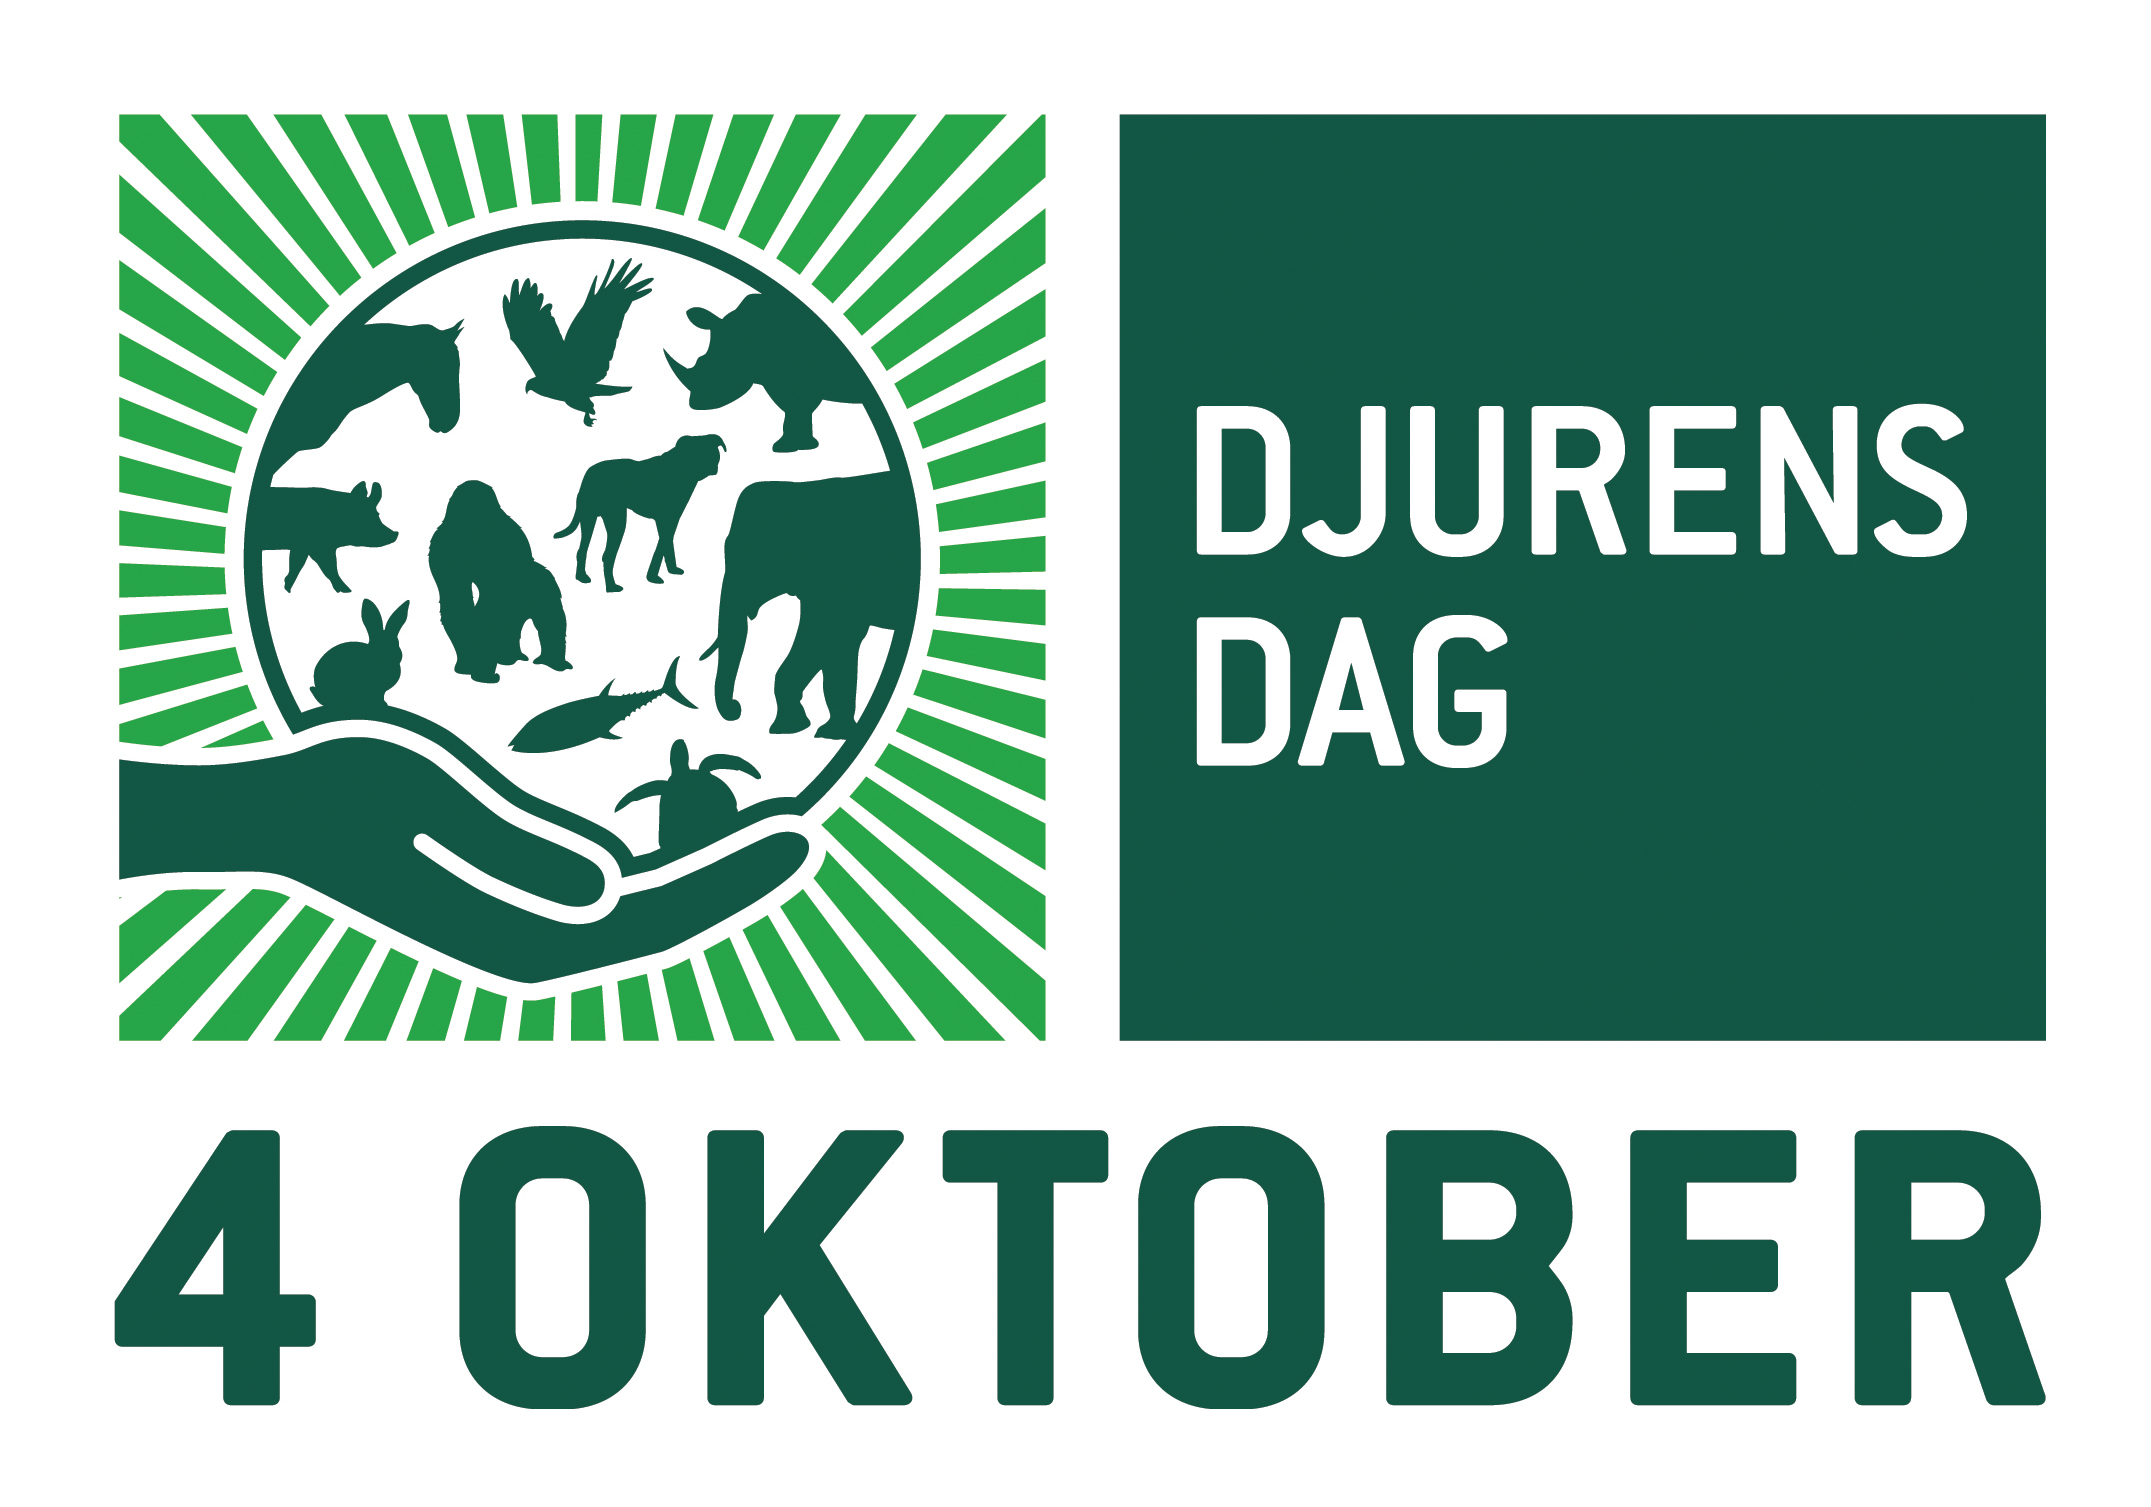 Swedish World Animal Day logo